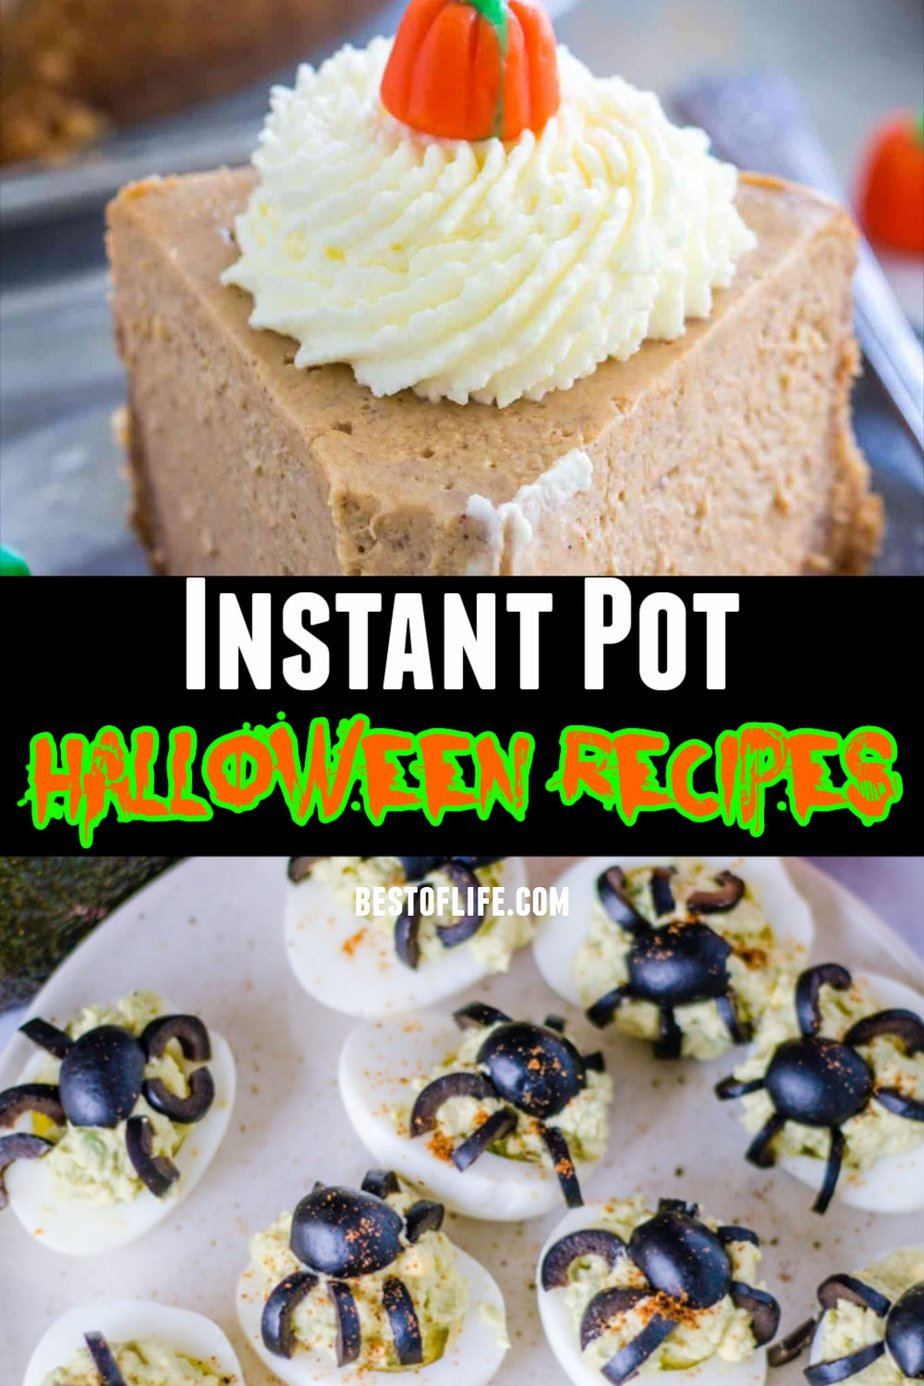 Instant Pot Halloween recipes are easy to make and can help you get in the spooky spirit or spirits of the season. Halloween Instant Pot Recipes | Halloween Food Instant Pot | Instant Pot Holiday Recipes | Halloween Party Food | Holiday Party Ideas | Halloween Recipe Ideas | Instant Pot Halloween Dinner #halloween #instantpot via @thebestoflife